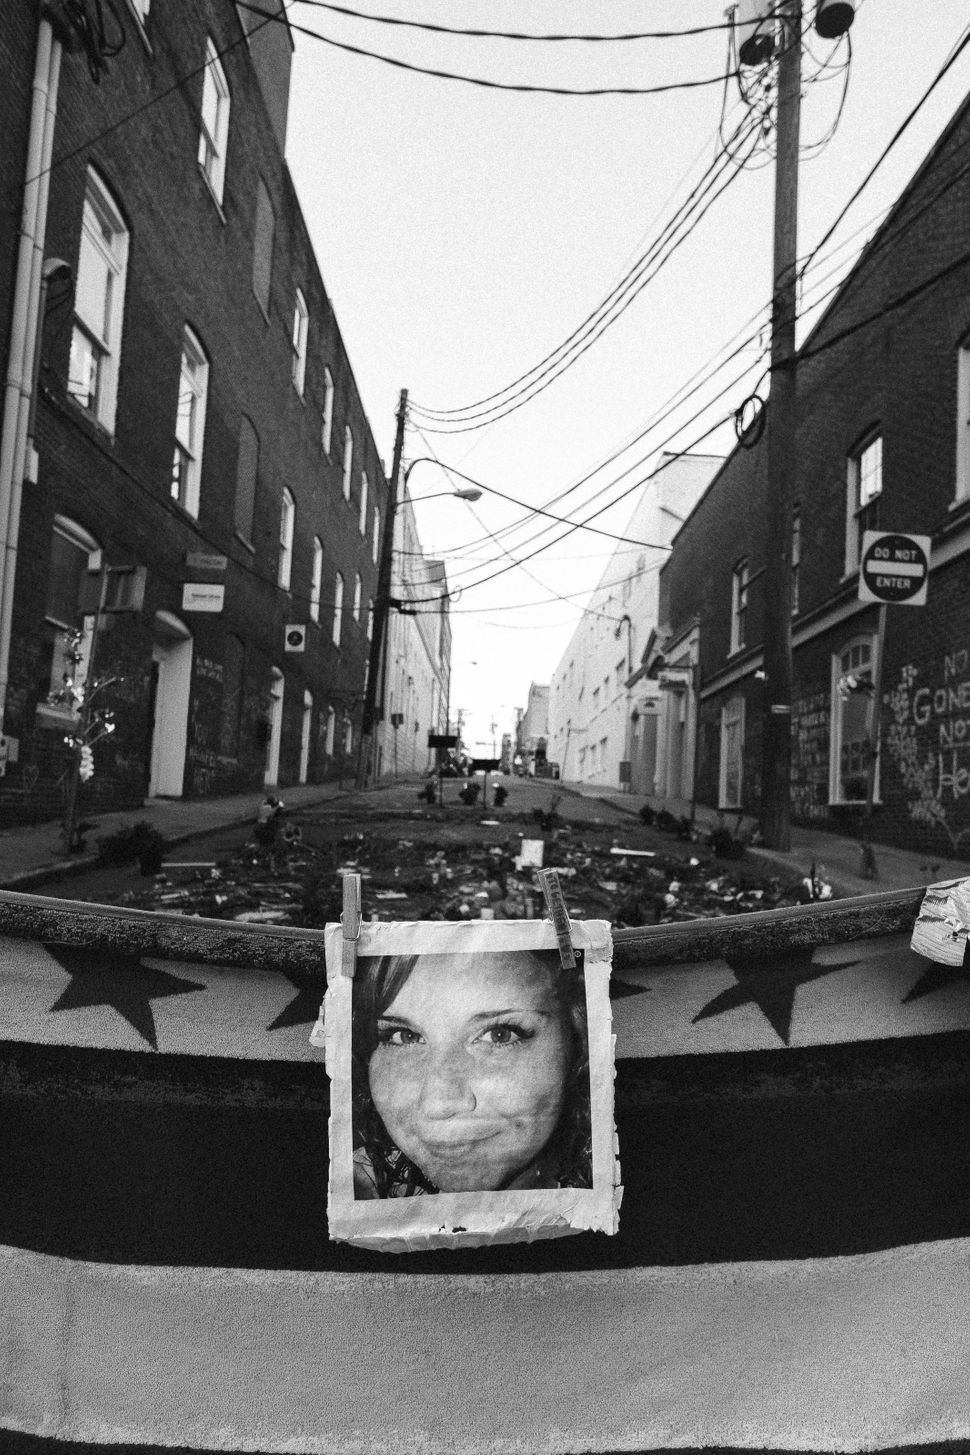 A photo of a memorial to Heather Heyer.